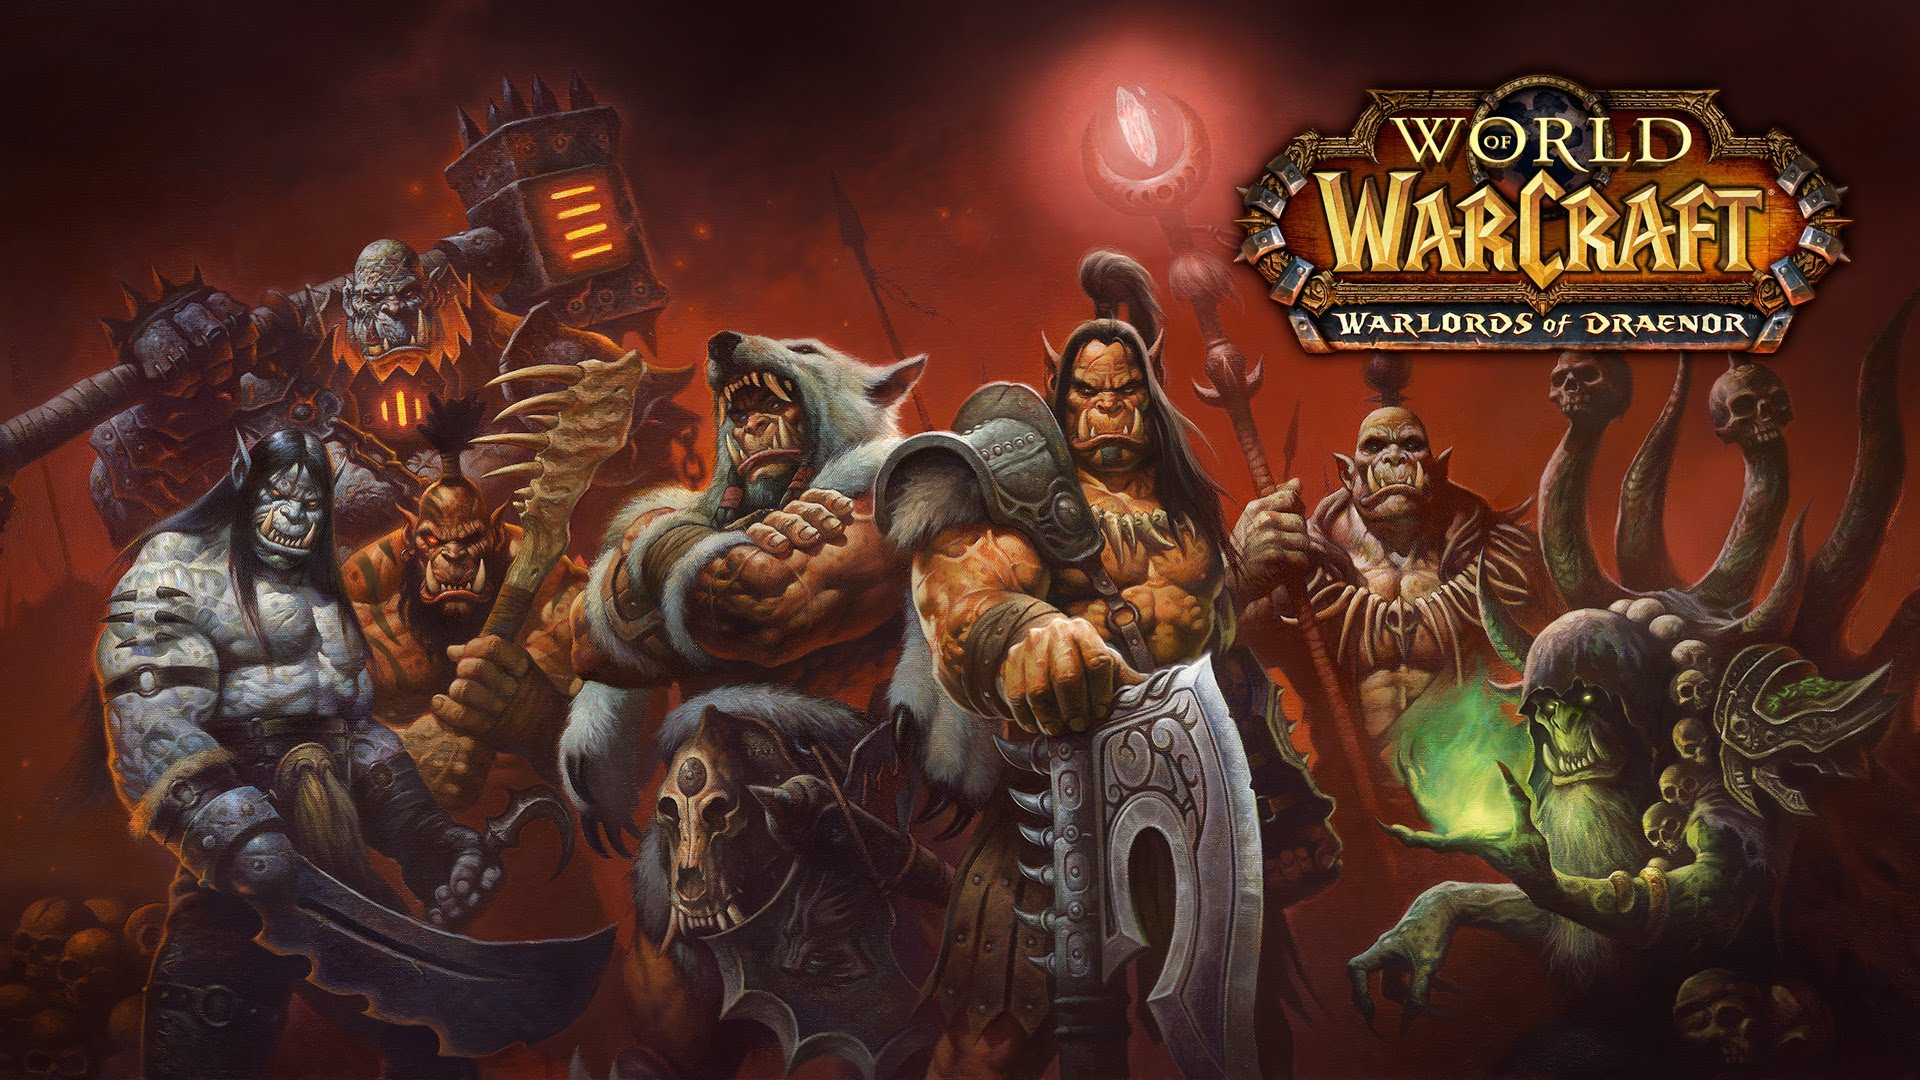 worldofwarcraftwod